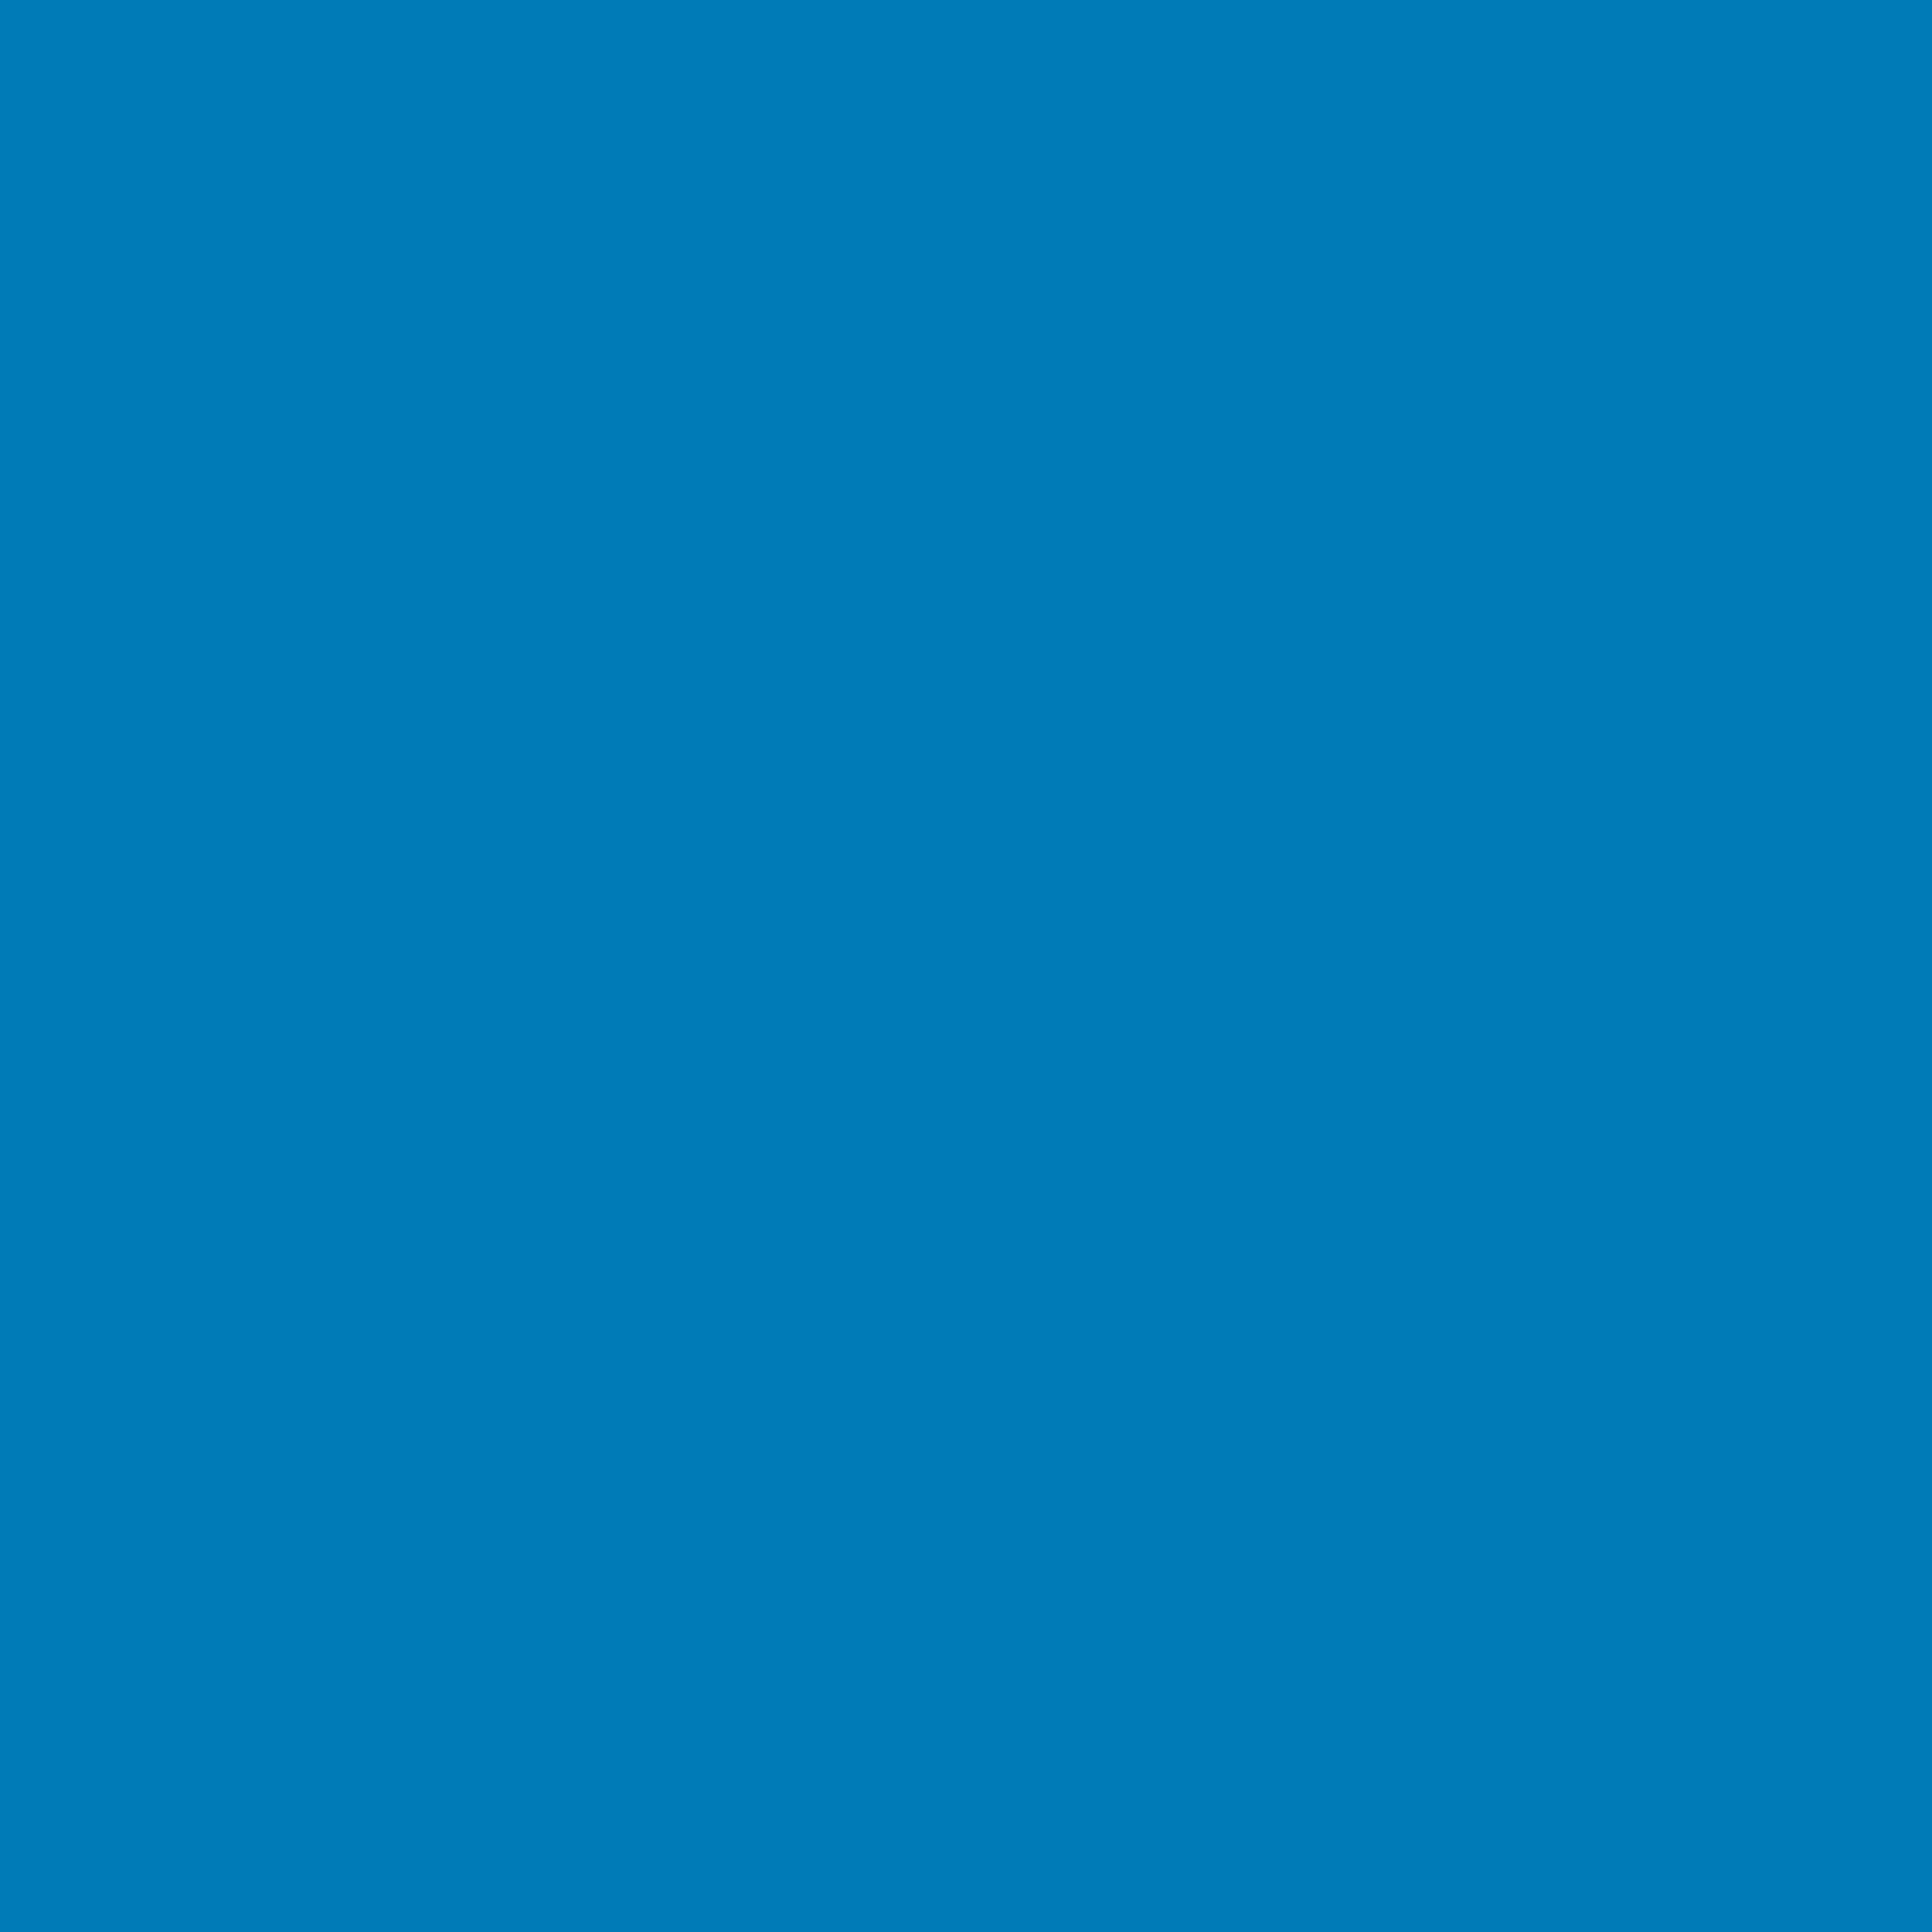 2732x2732 Star Command Blue Solid Color Background